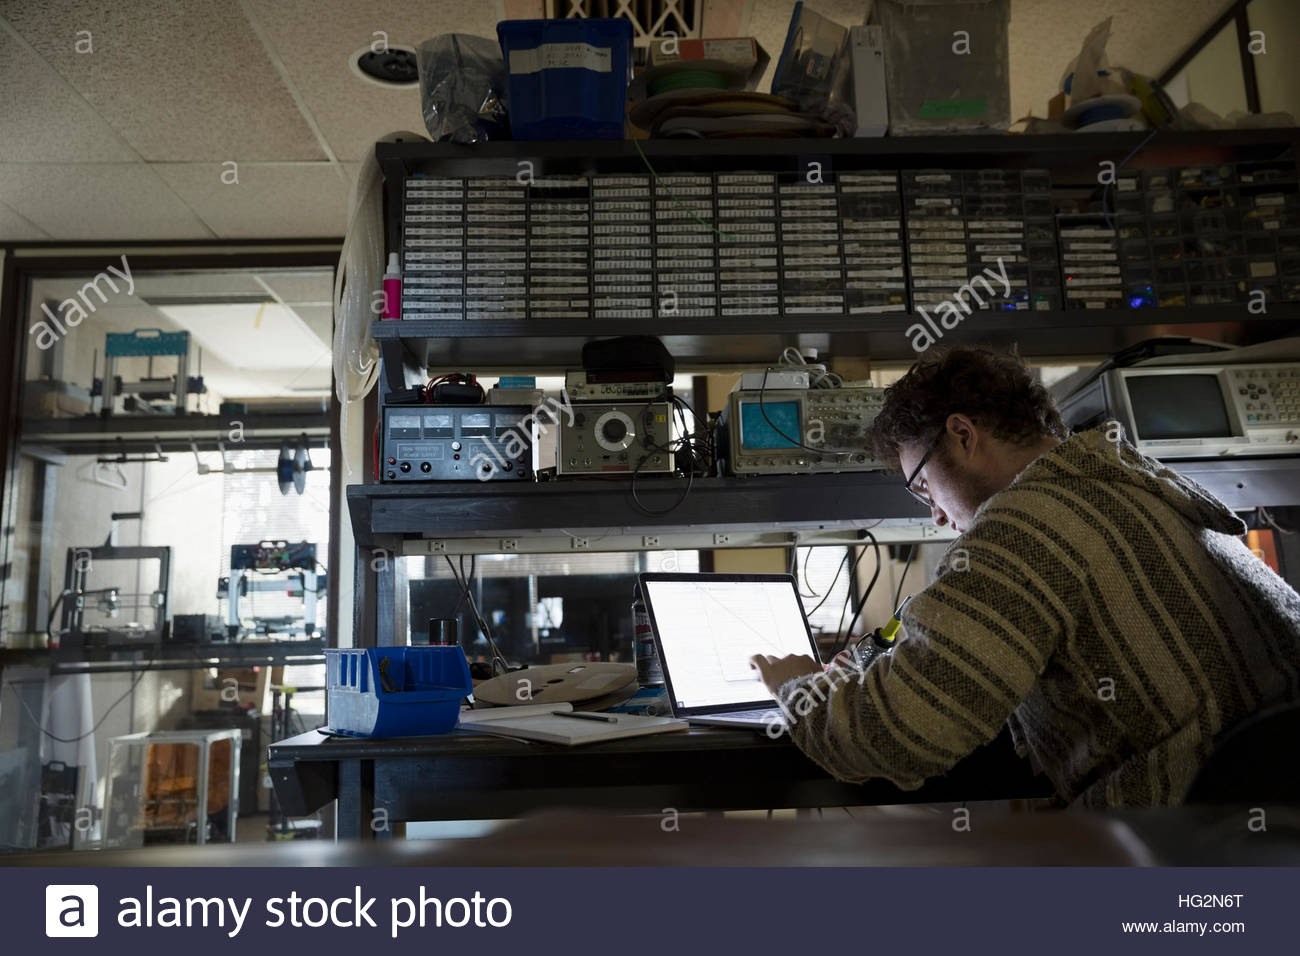 Computer programmer working at laptop in dark workshop - Stock Image